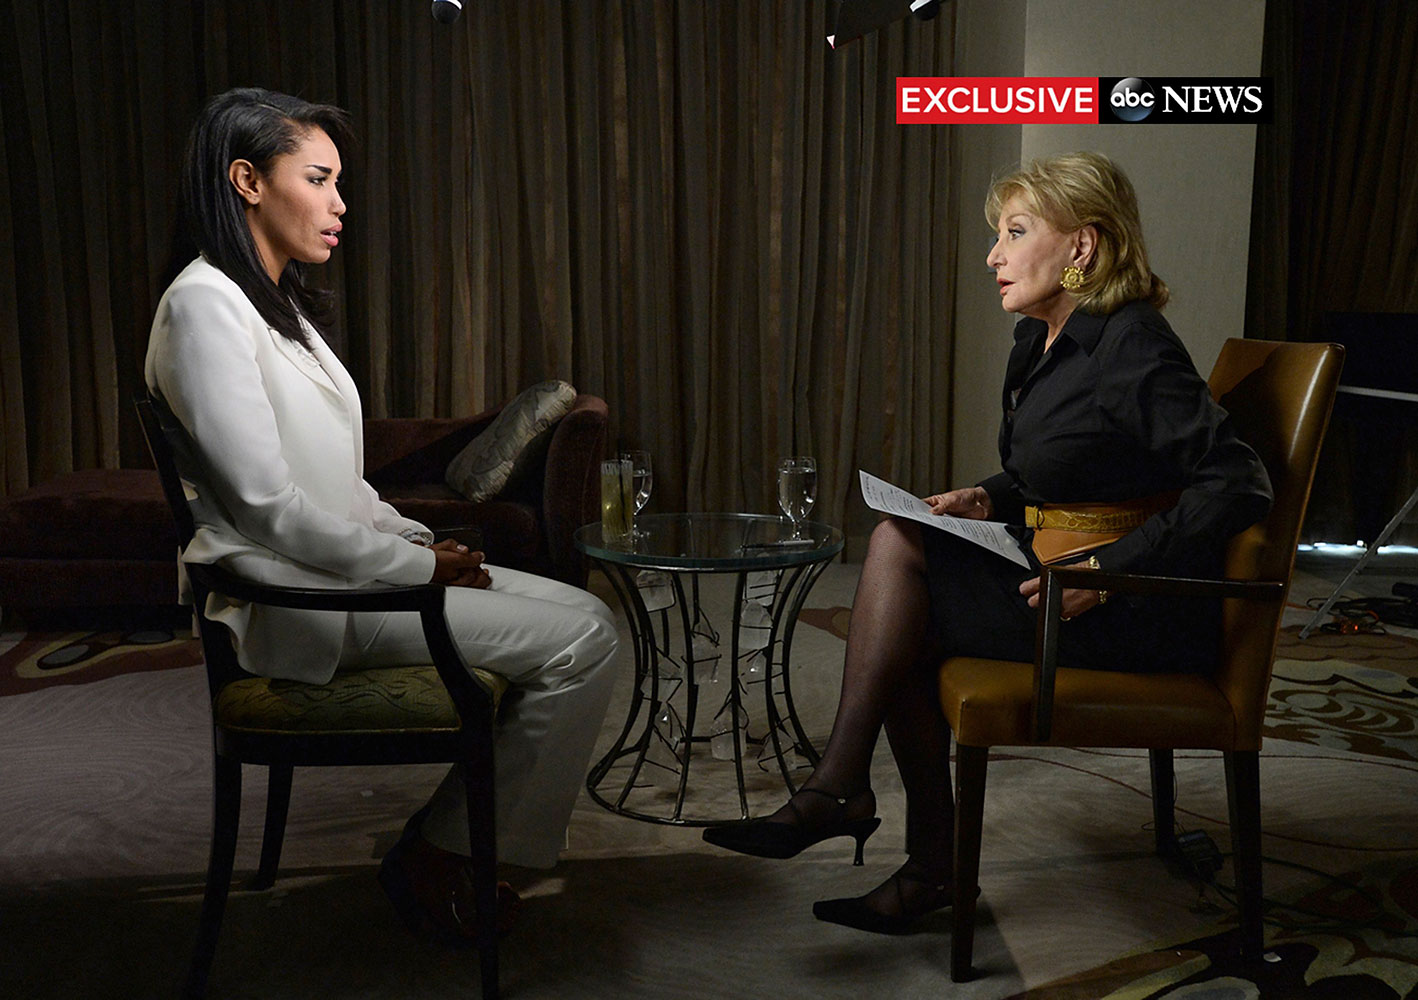 Barbara Walters interviews Los Angeles Clippers owner Donald Sterling's female companion, V. Stiviano, in Los Angeles in this handout picture taken May 2, 2014, courtesy of ABC.